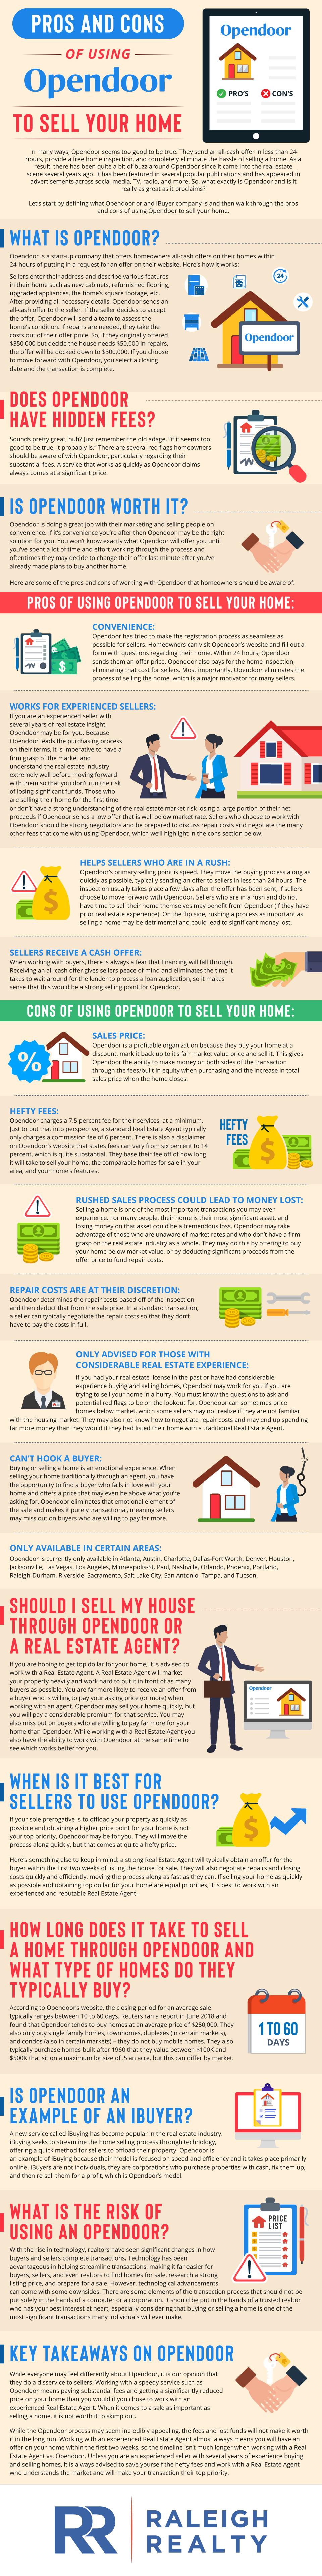 Pros and Cons of using Opendoor to Sell Your Home